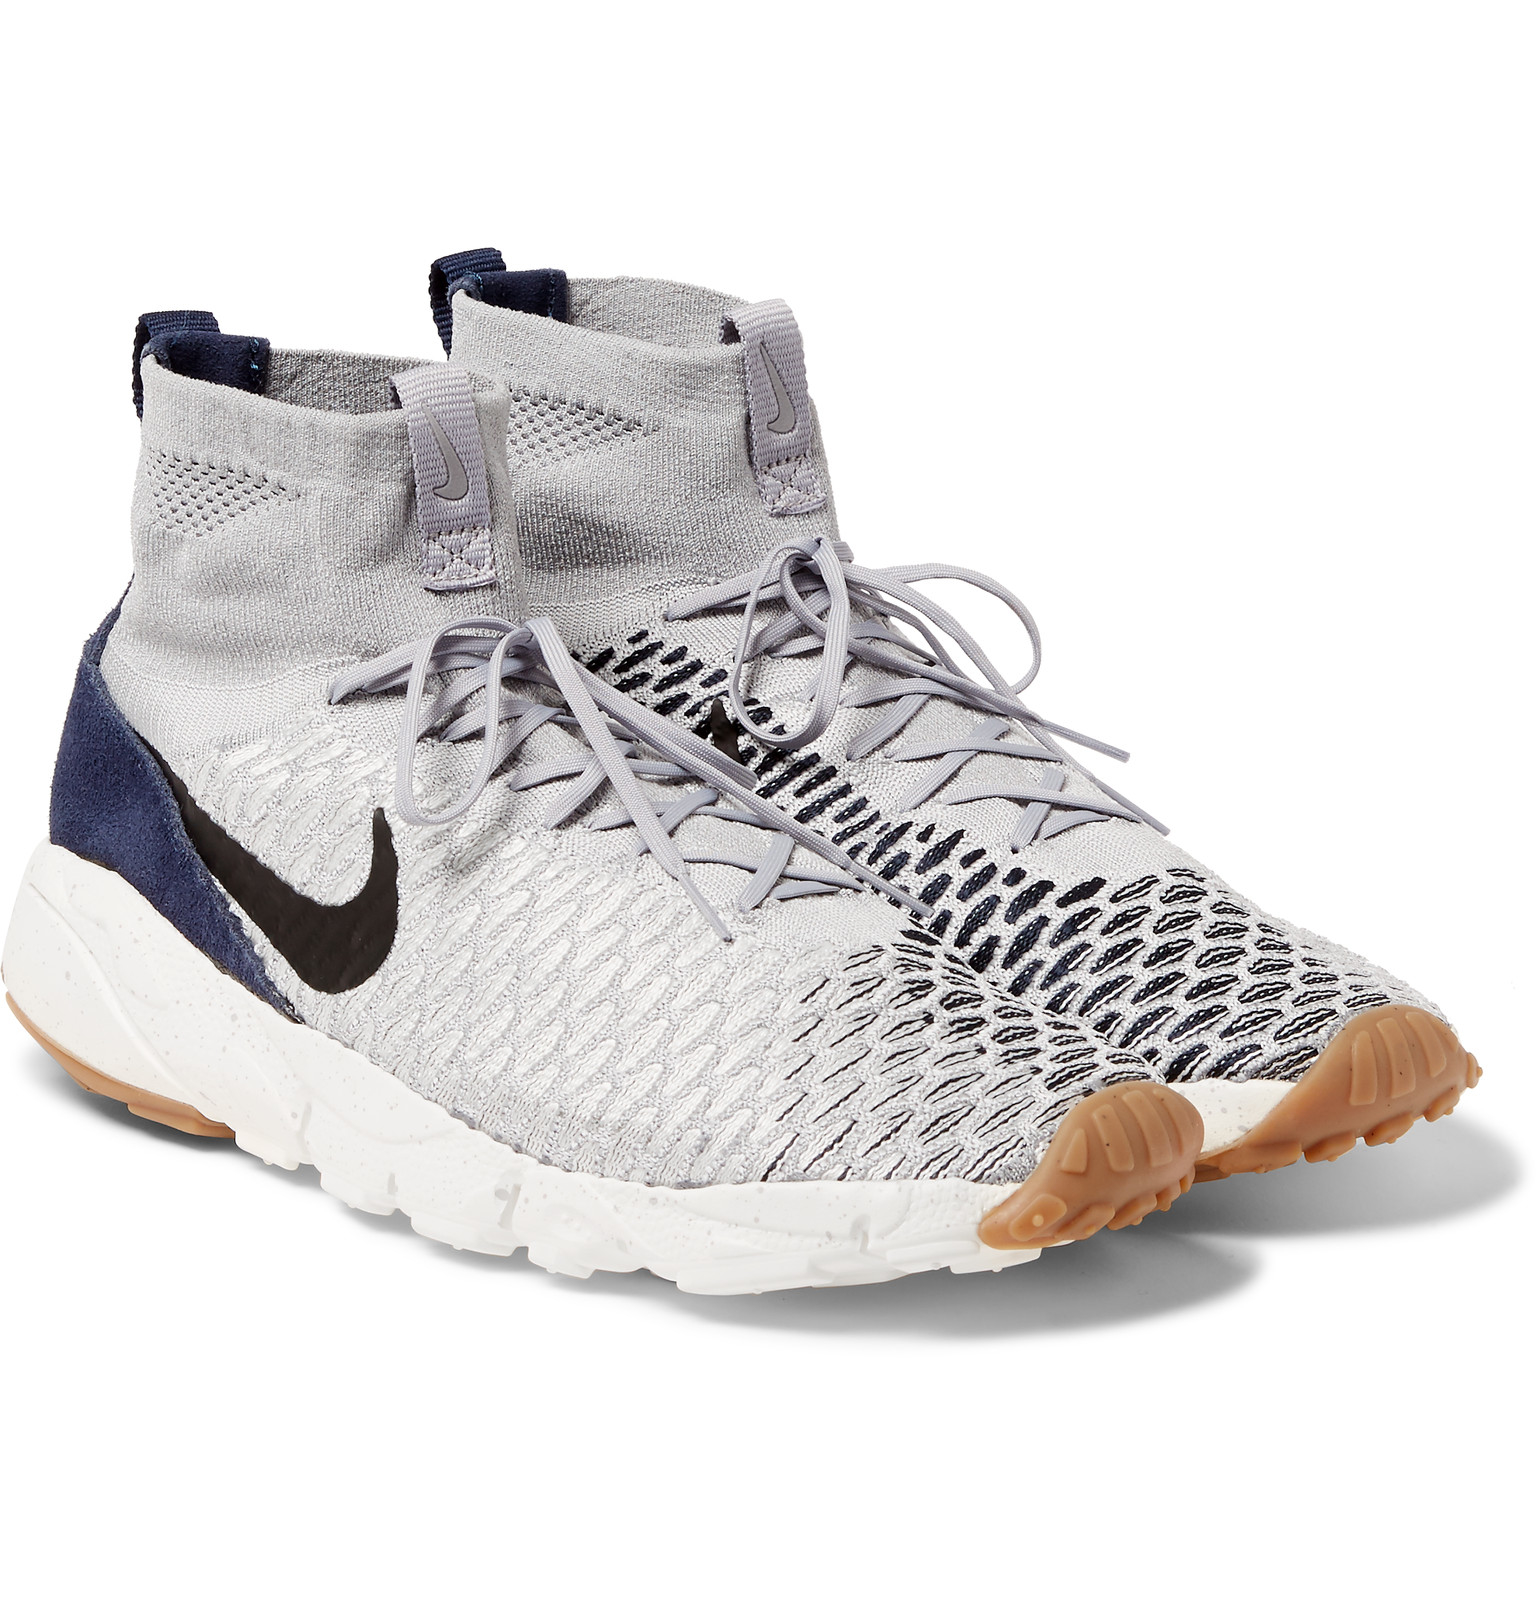 33c8d8274cd8 Nike Air Footscape Magista Flyknit High-top Sneakers in Gray for Men ...